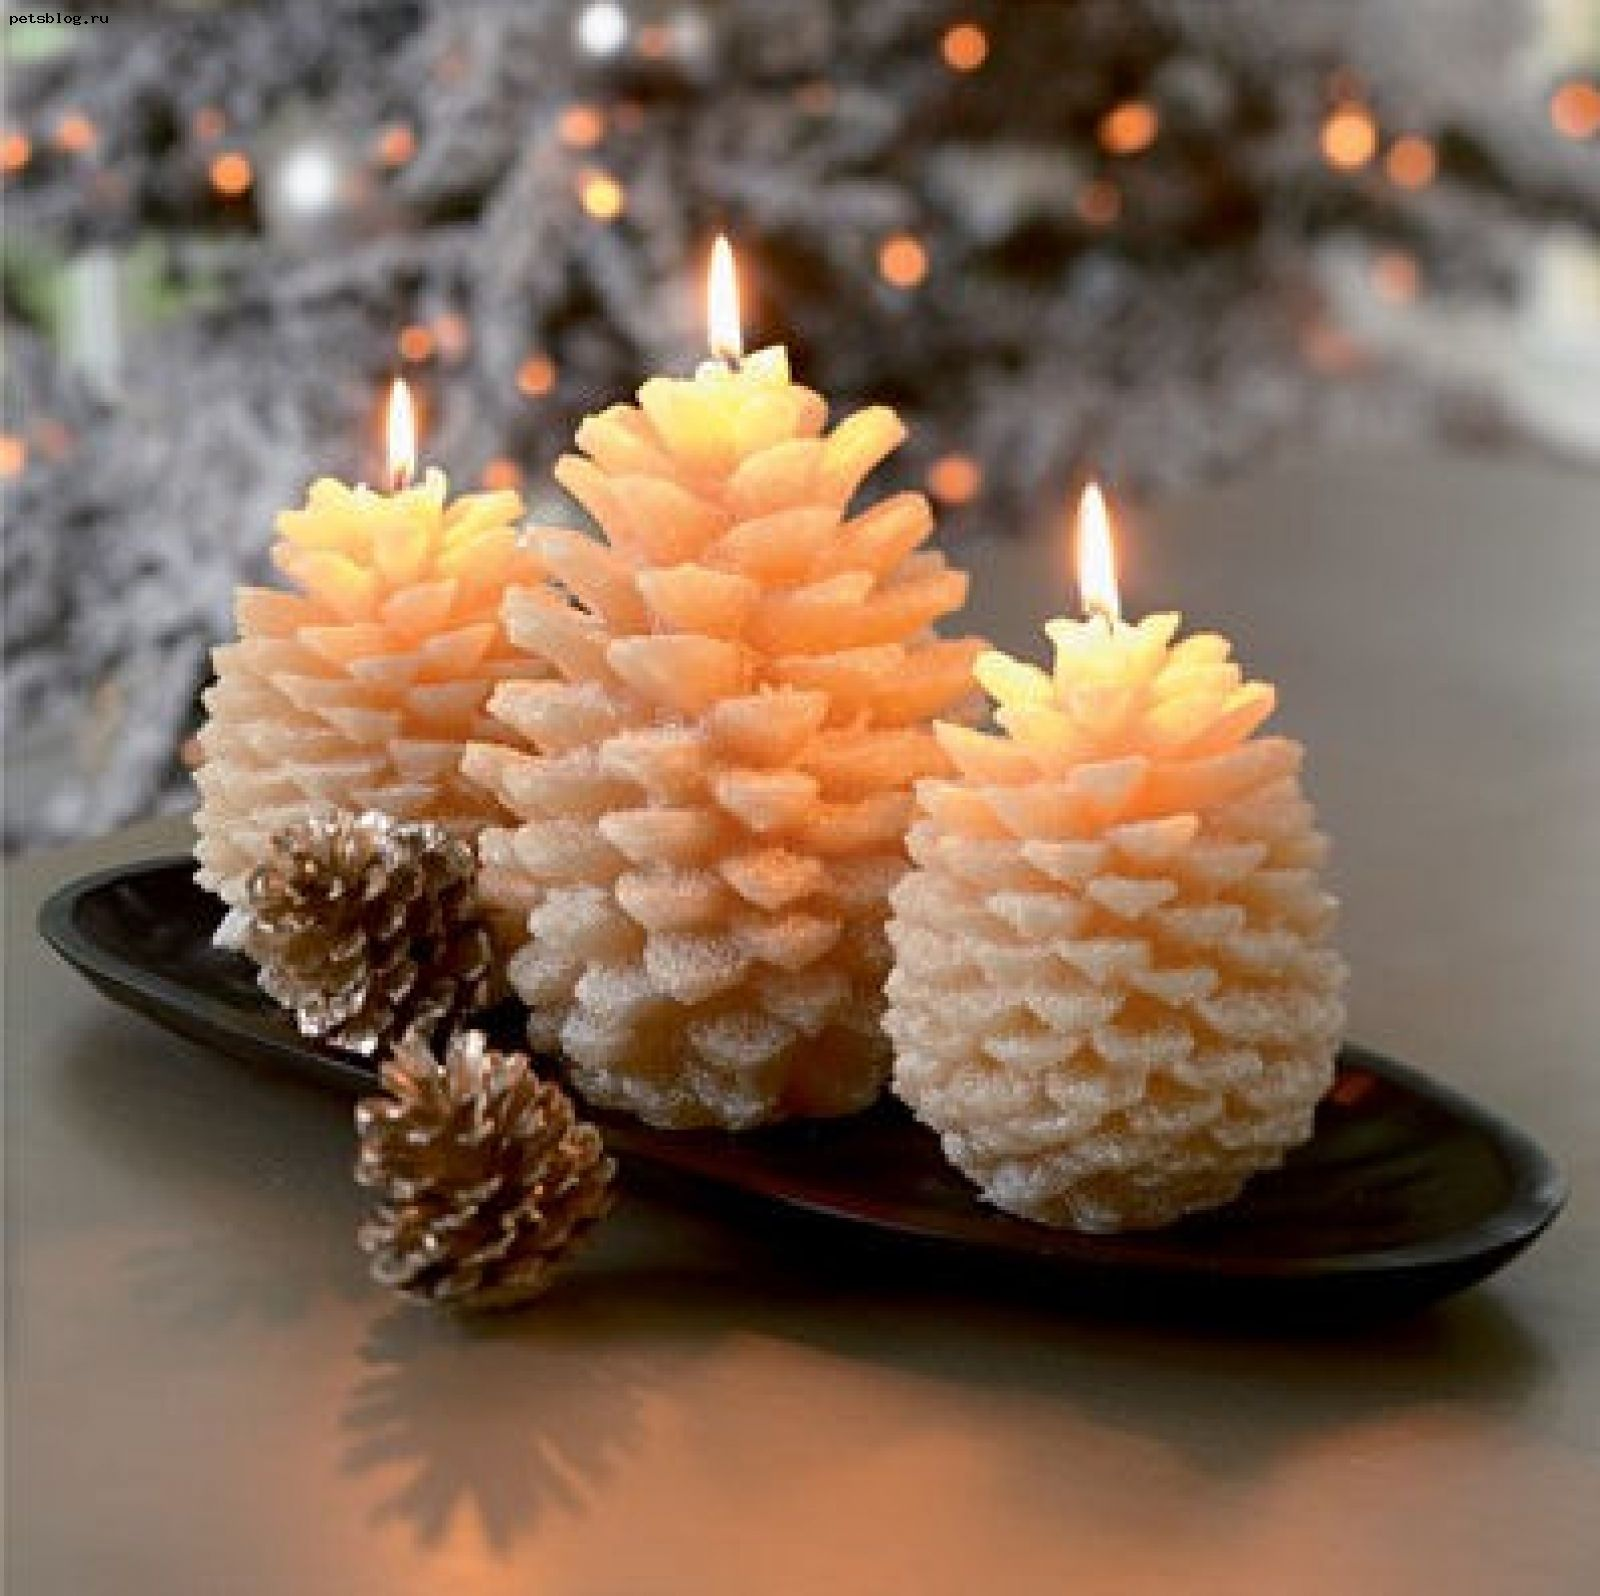 Pine Cone Candles Candles In The Shape Of A Pine Cone Candles Pinterest Pine